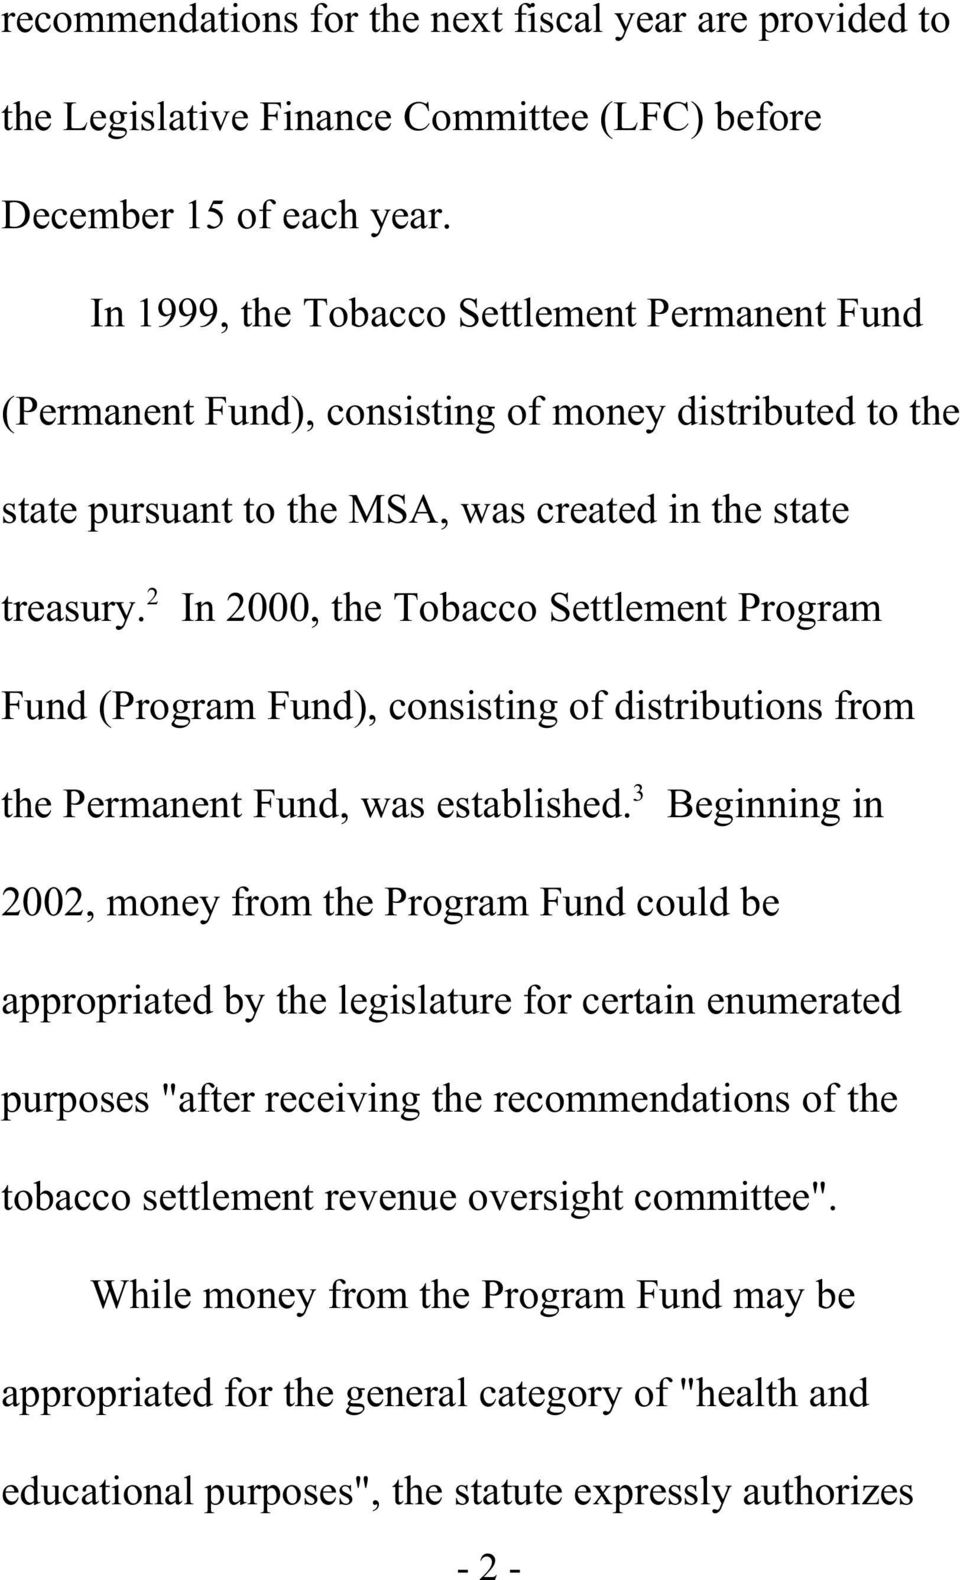 In 2000, the Tobacco Settlement Program Fund (Program Fund), consisting of distributions from 3 the Permanent Fund, was established.